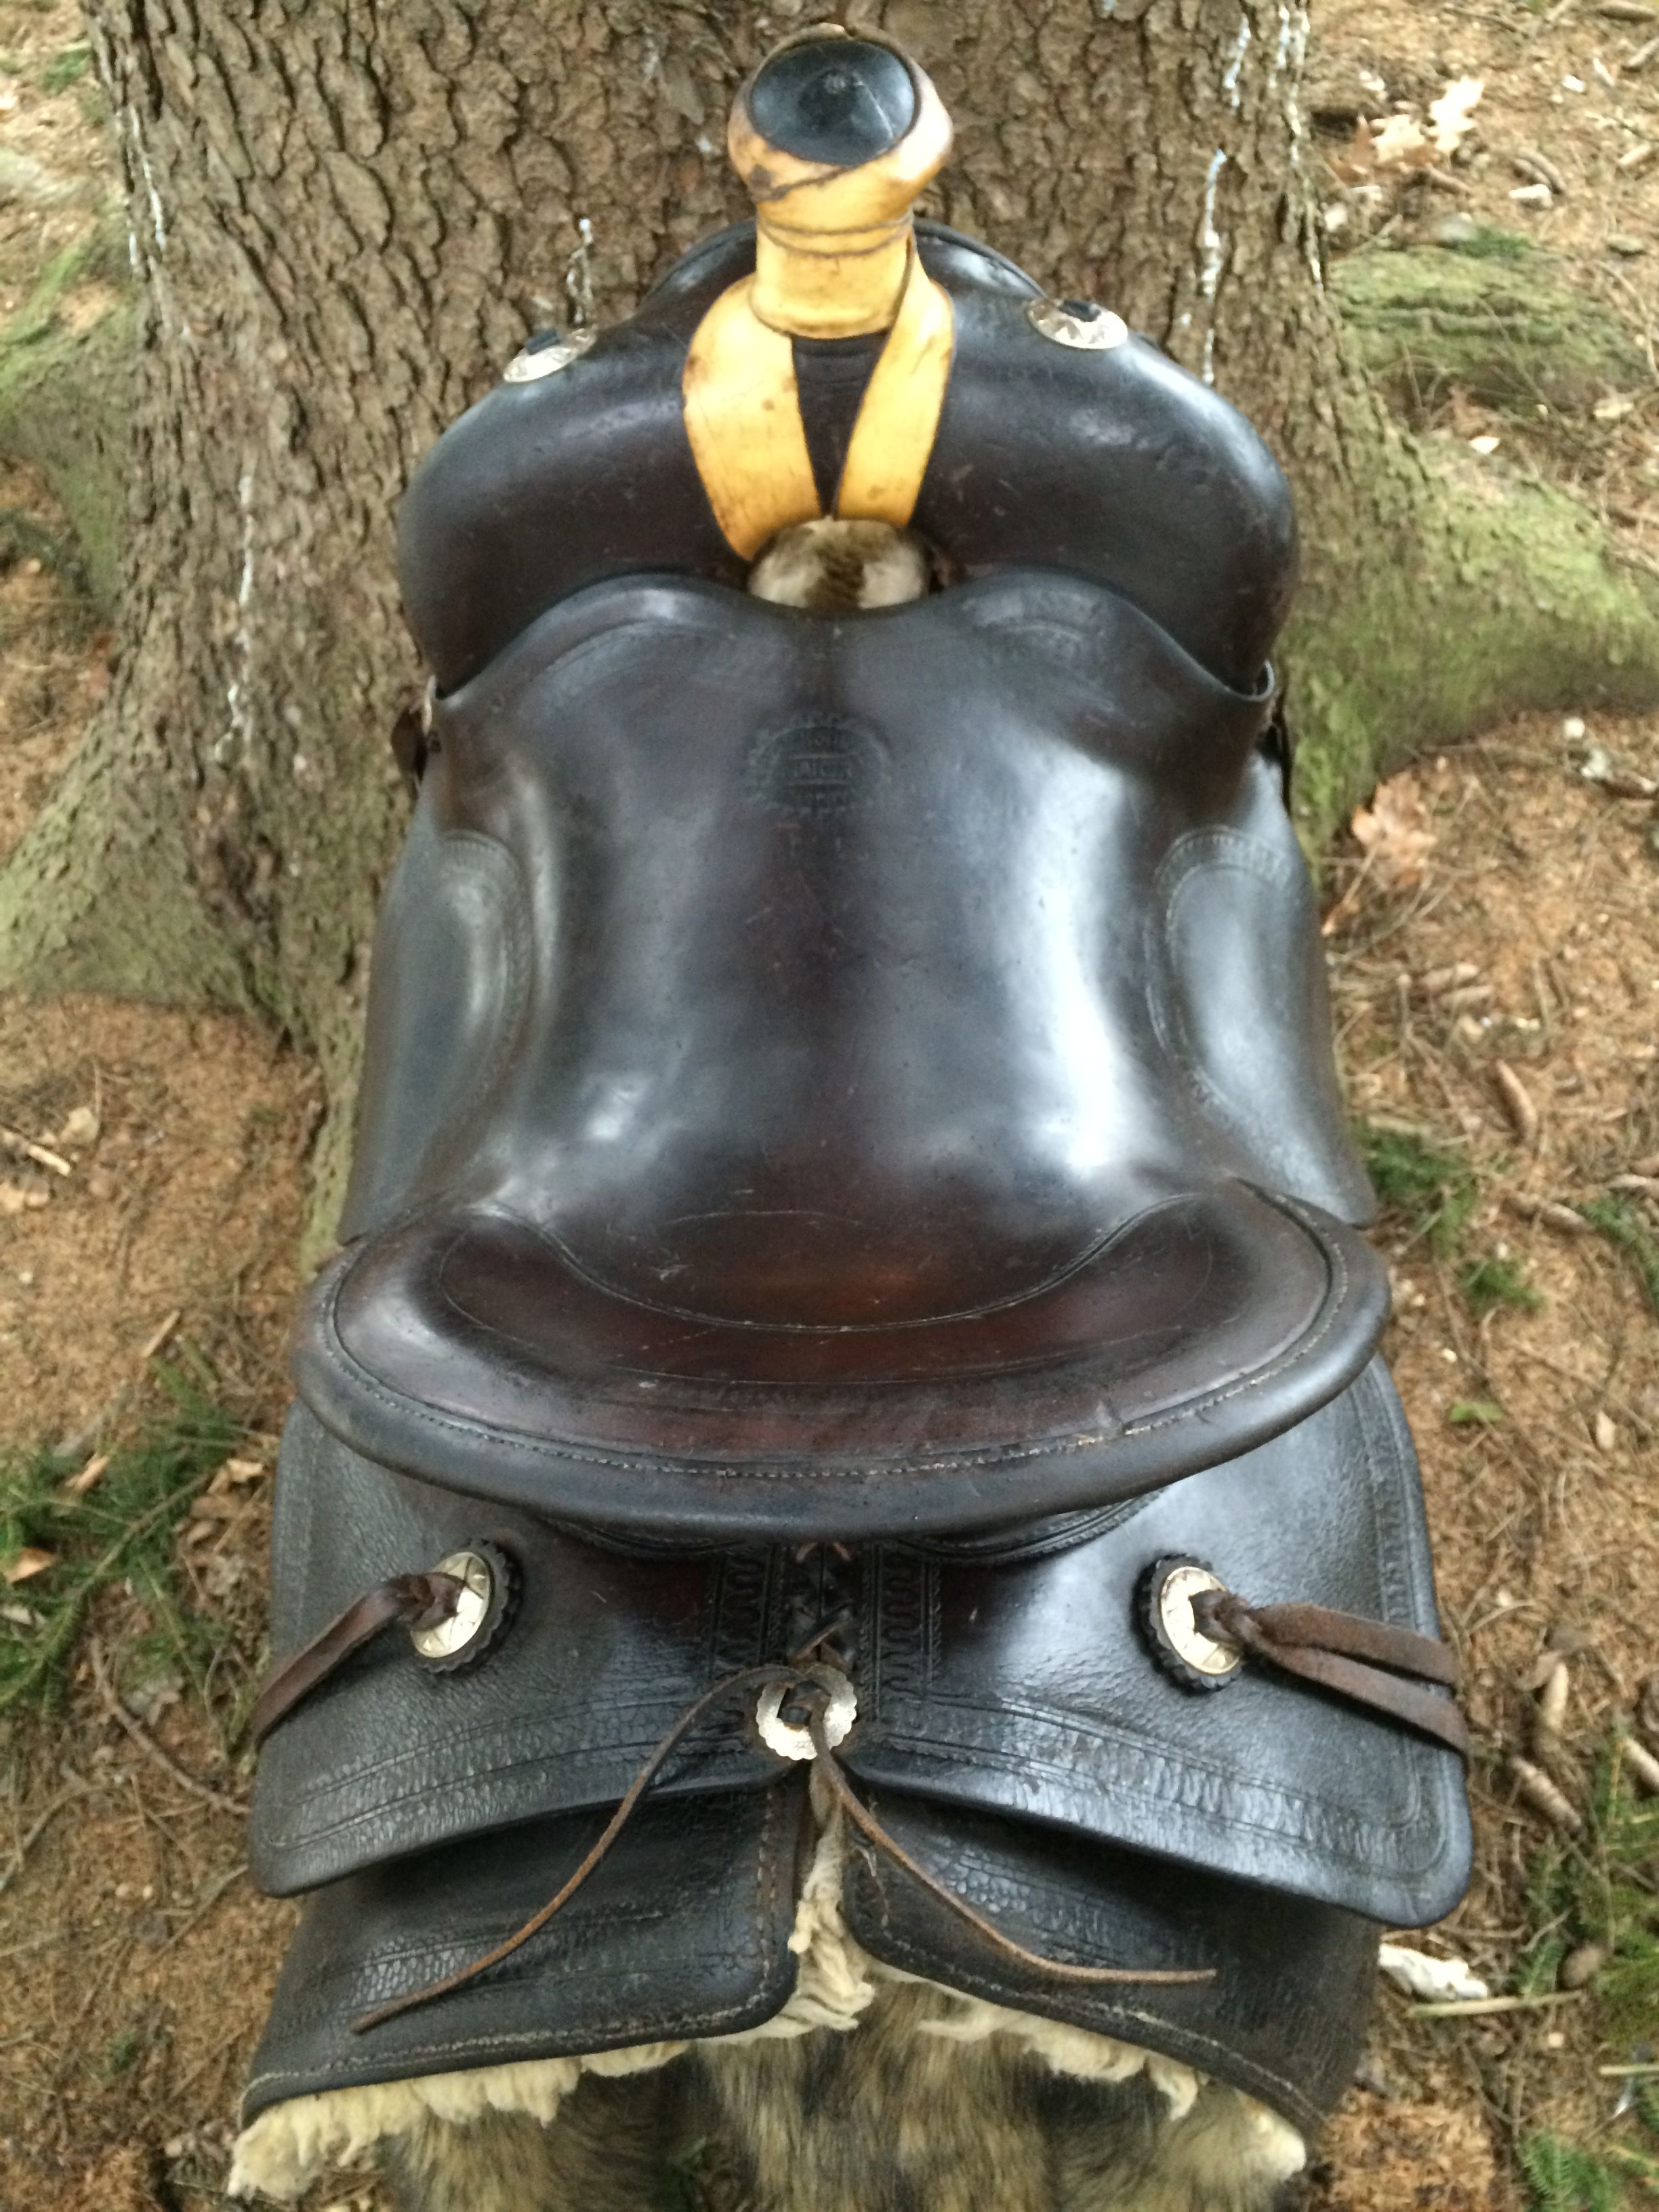 SOLD! - www facebook/vintage saddles Vintage Shipley saddle